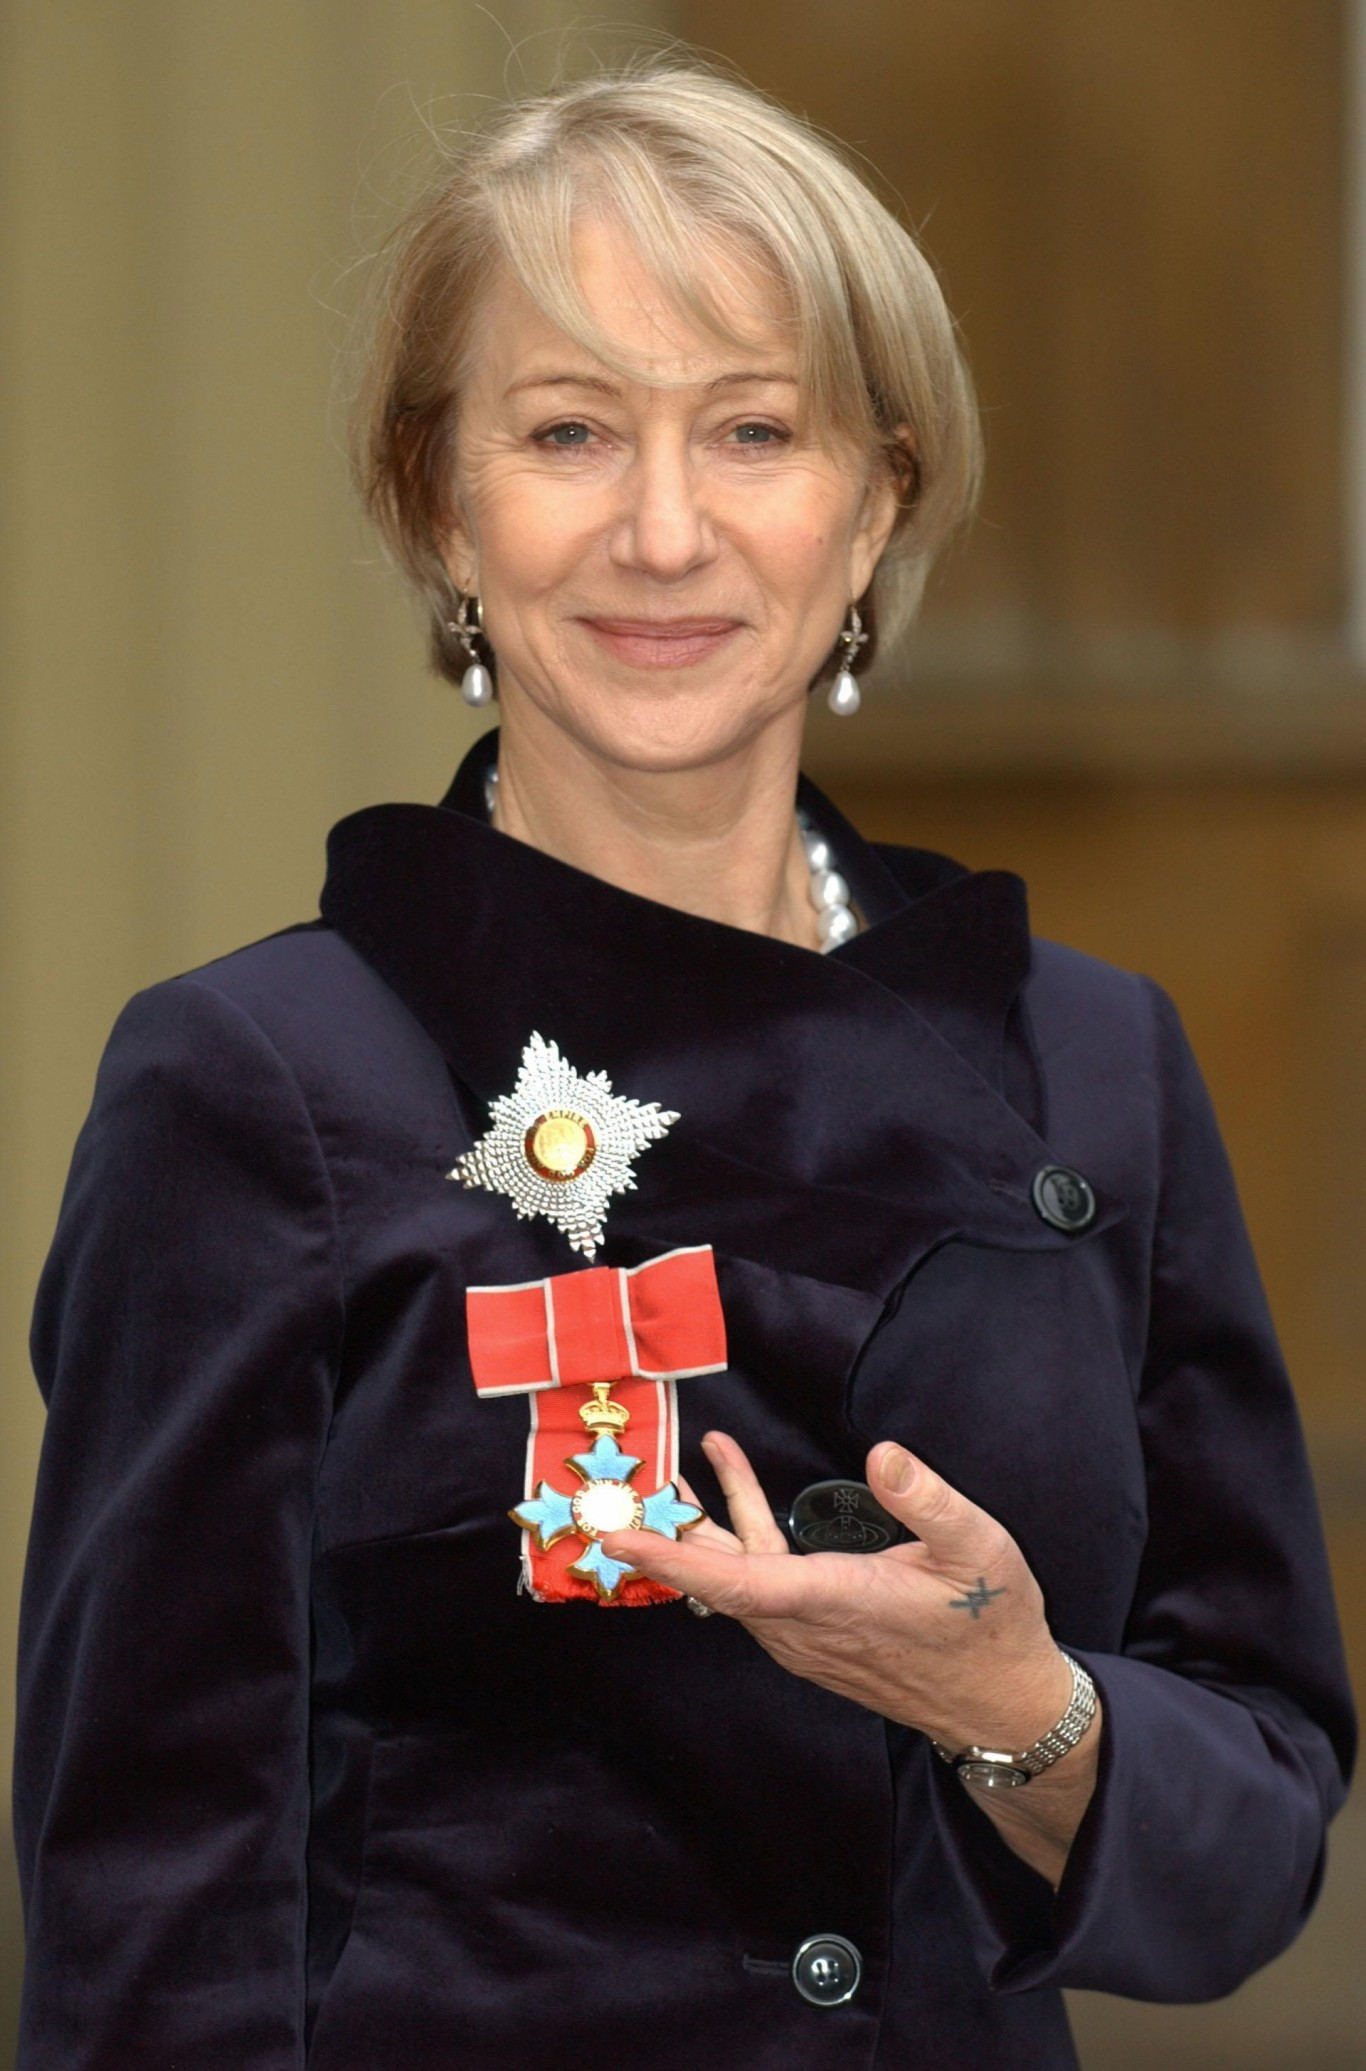 Helen Mirren after being invested as a Dame from the Prince of Wales during a ceremony held at Buckingham Palace in 2003